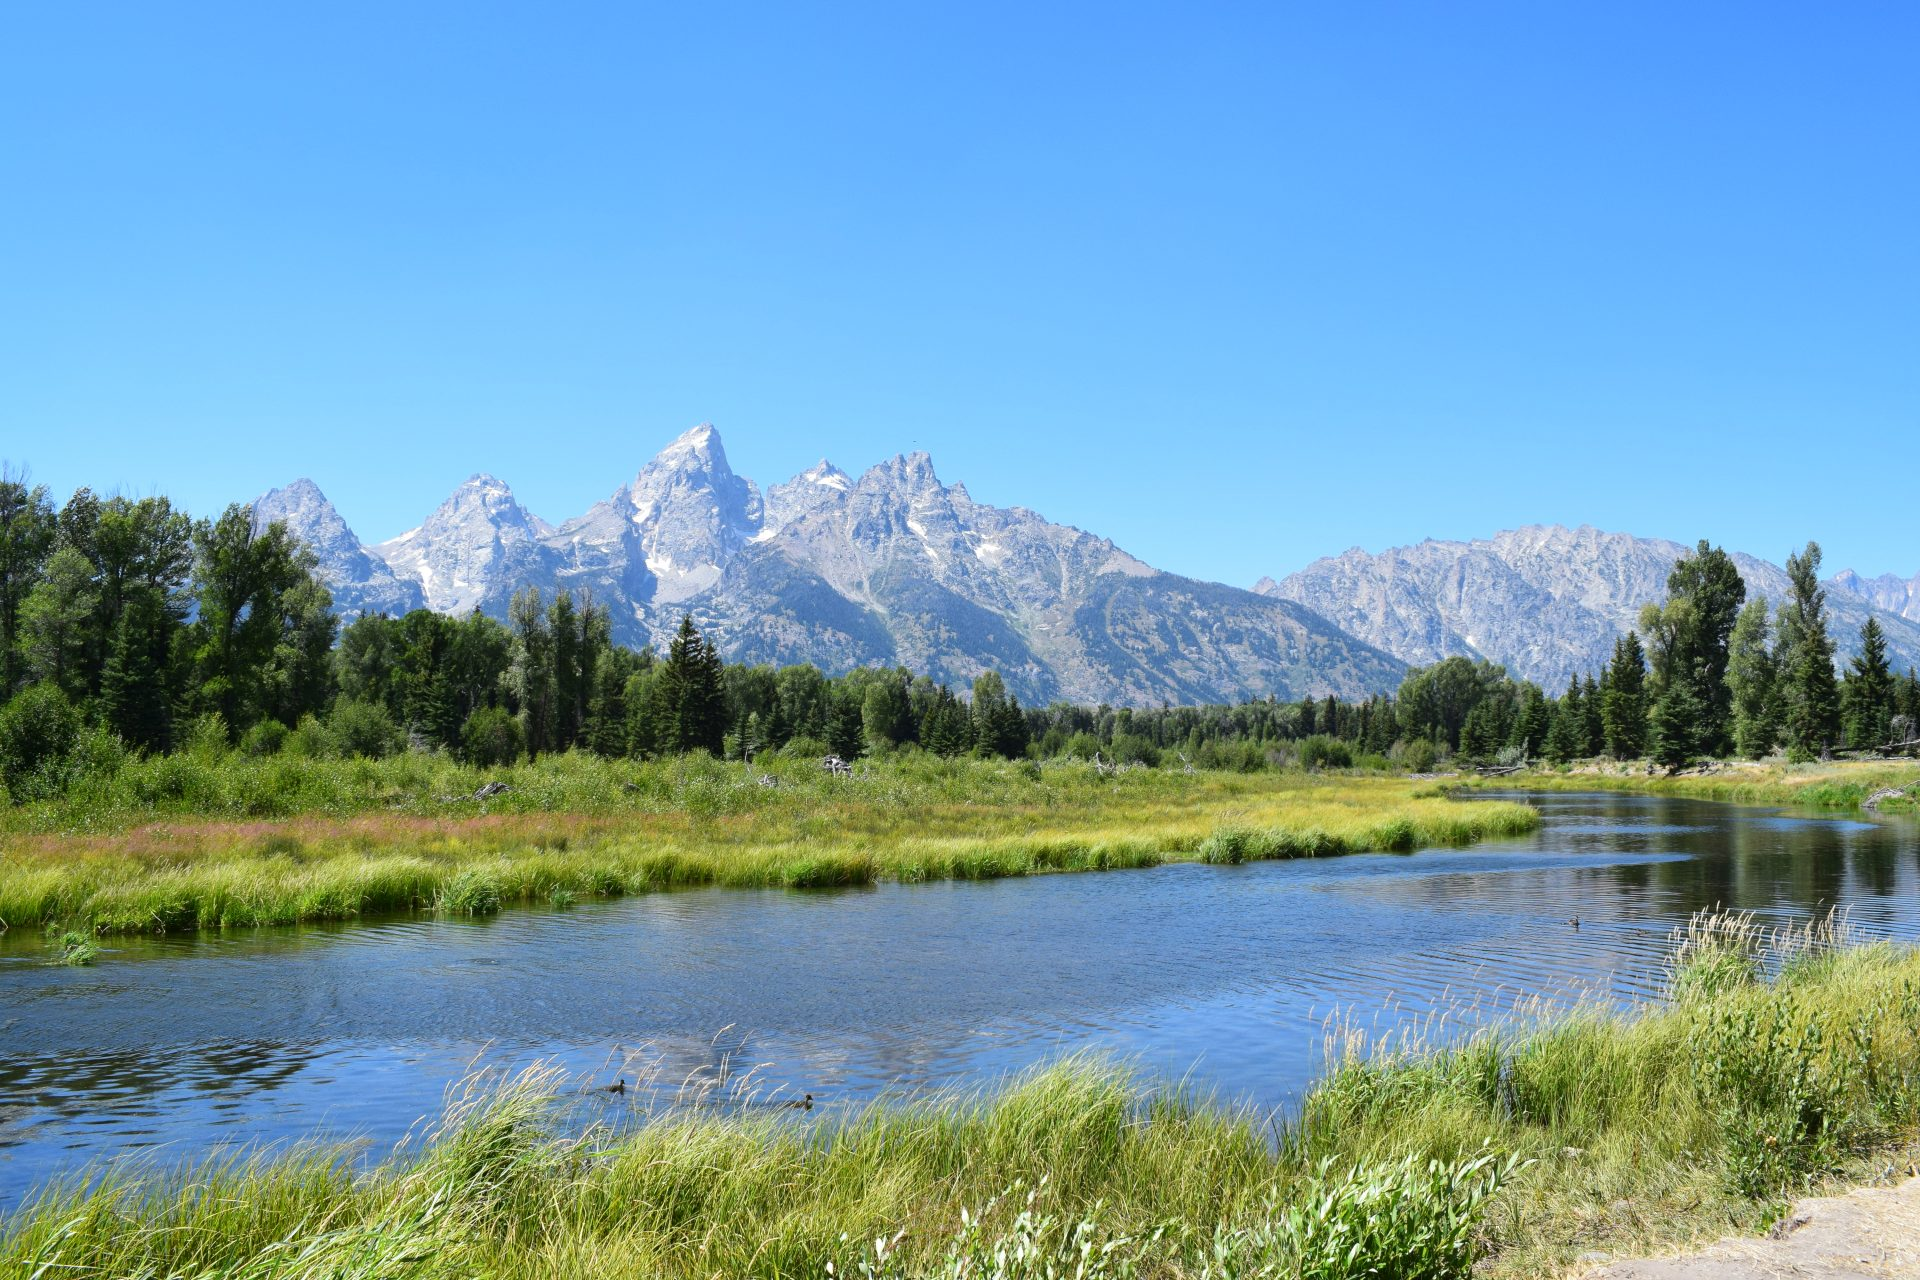 A flowing river in front of mountains